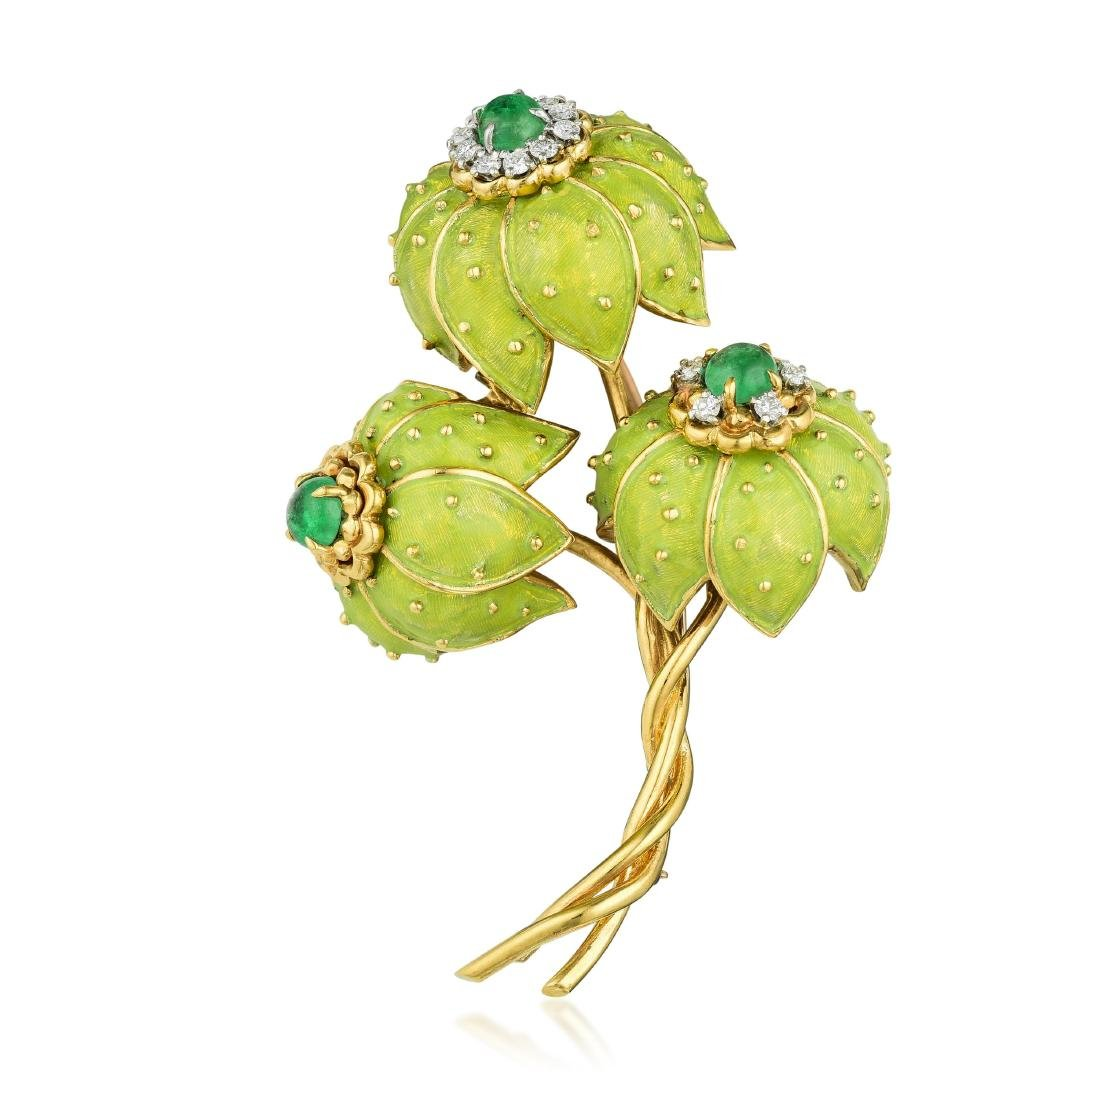 Tiffany & Co. Emerald Diamond and Enamel Chrysanthemum